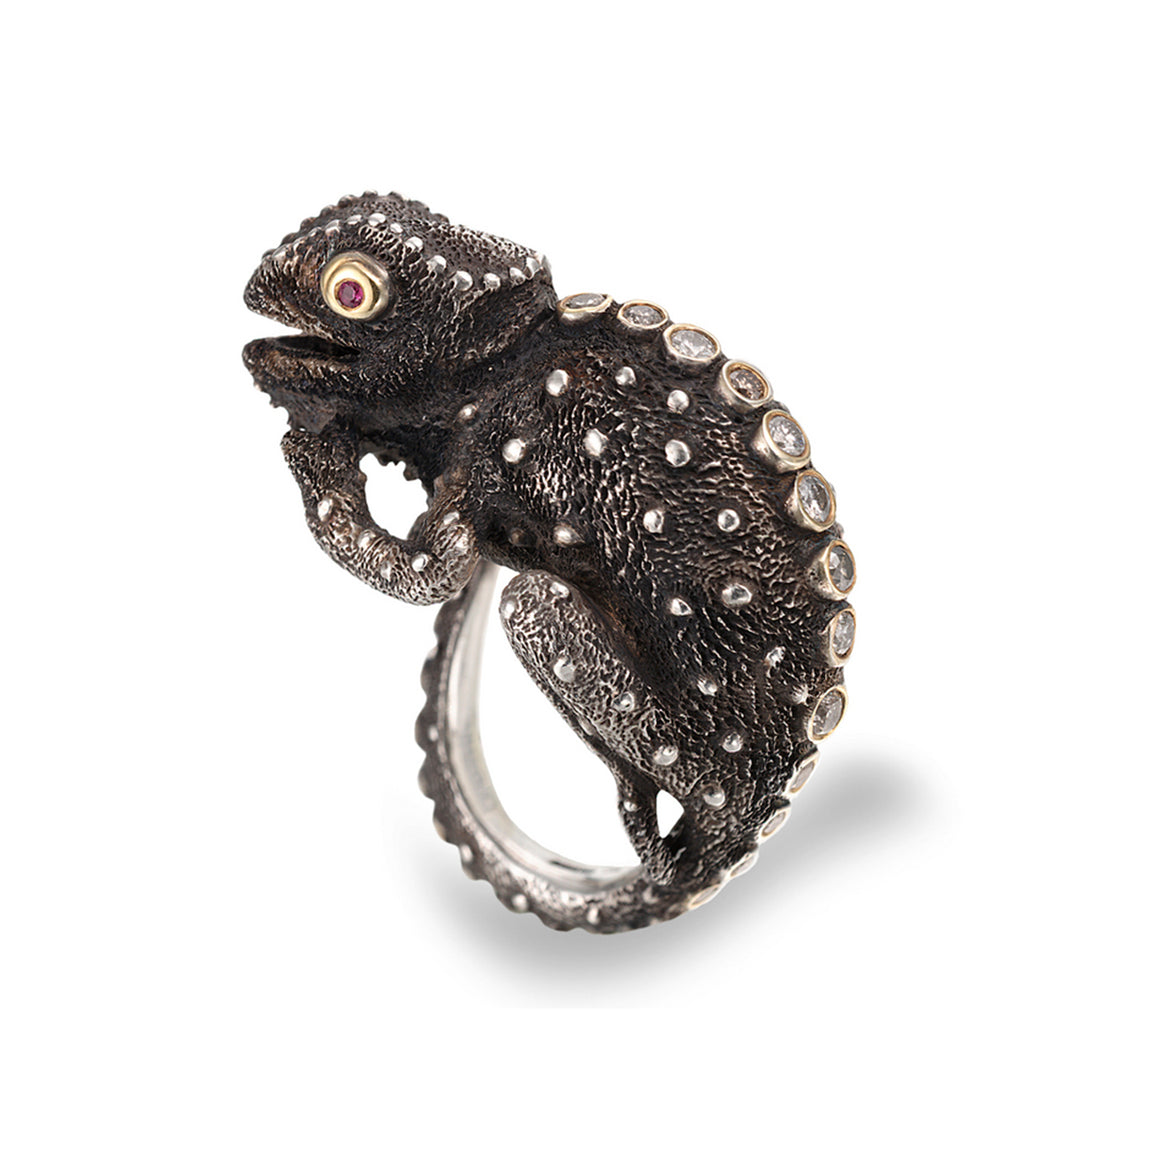 Black Chameleon Ring by Manya & Roumen - Talisman Collection Fine Jewelers